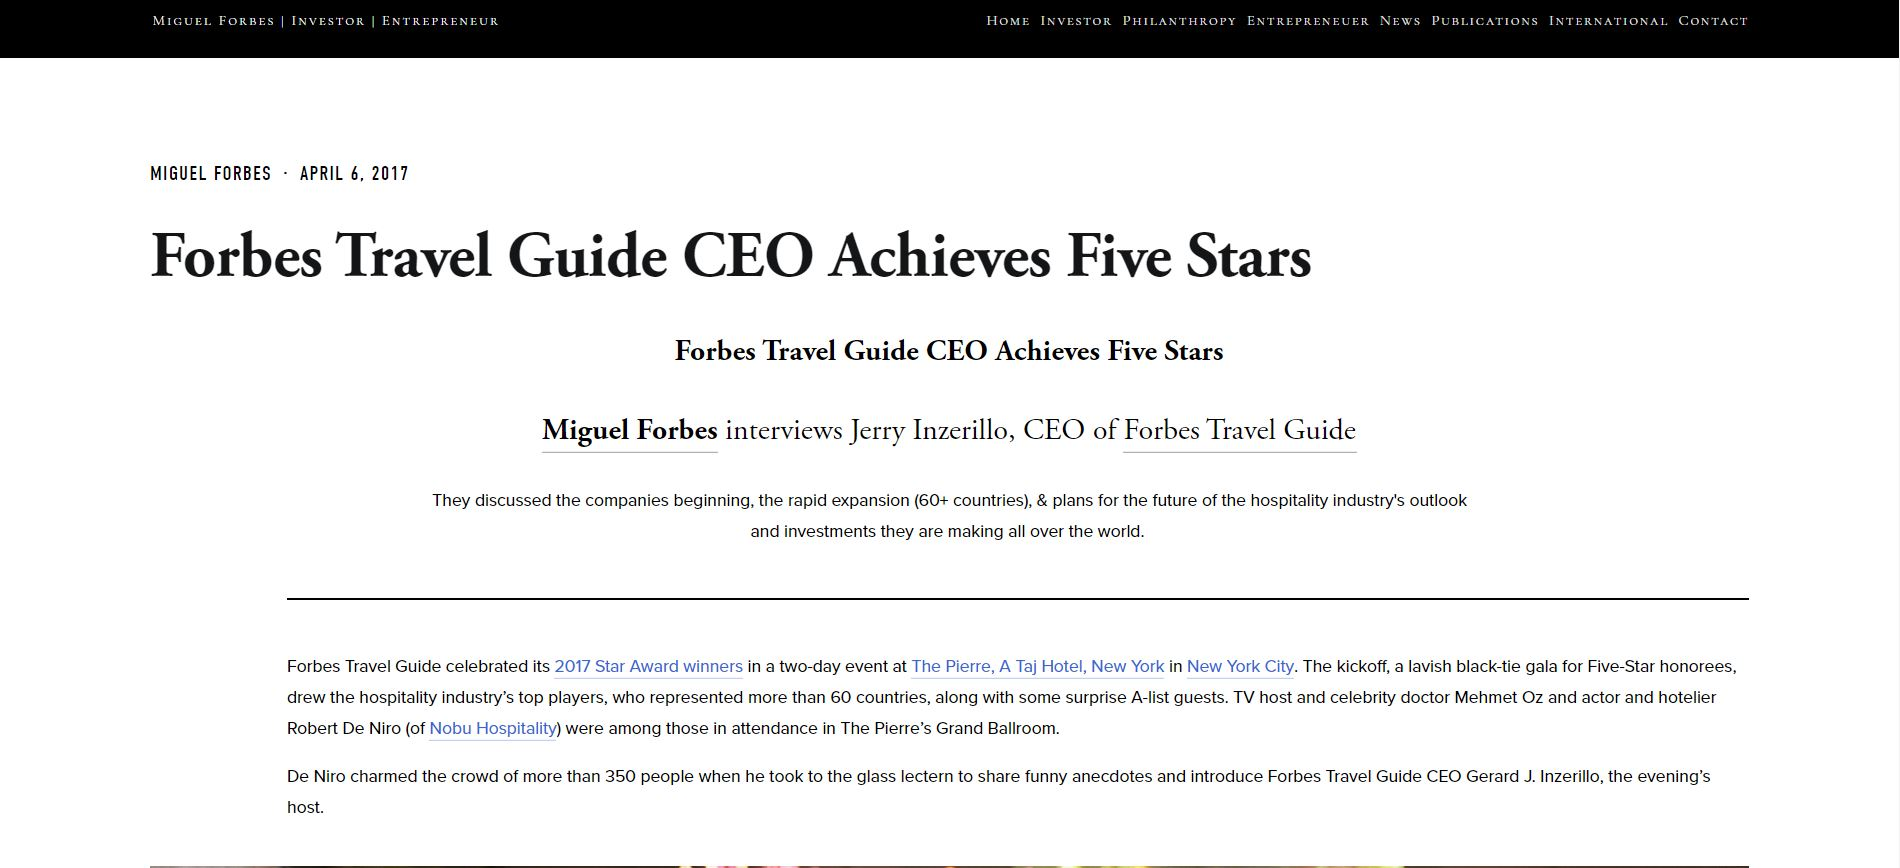 Forbes Travel Guide.JPG